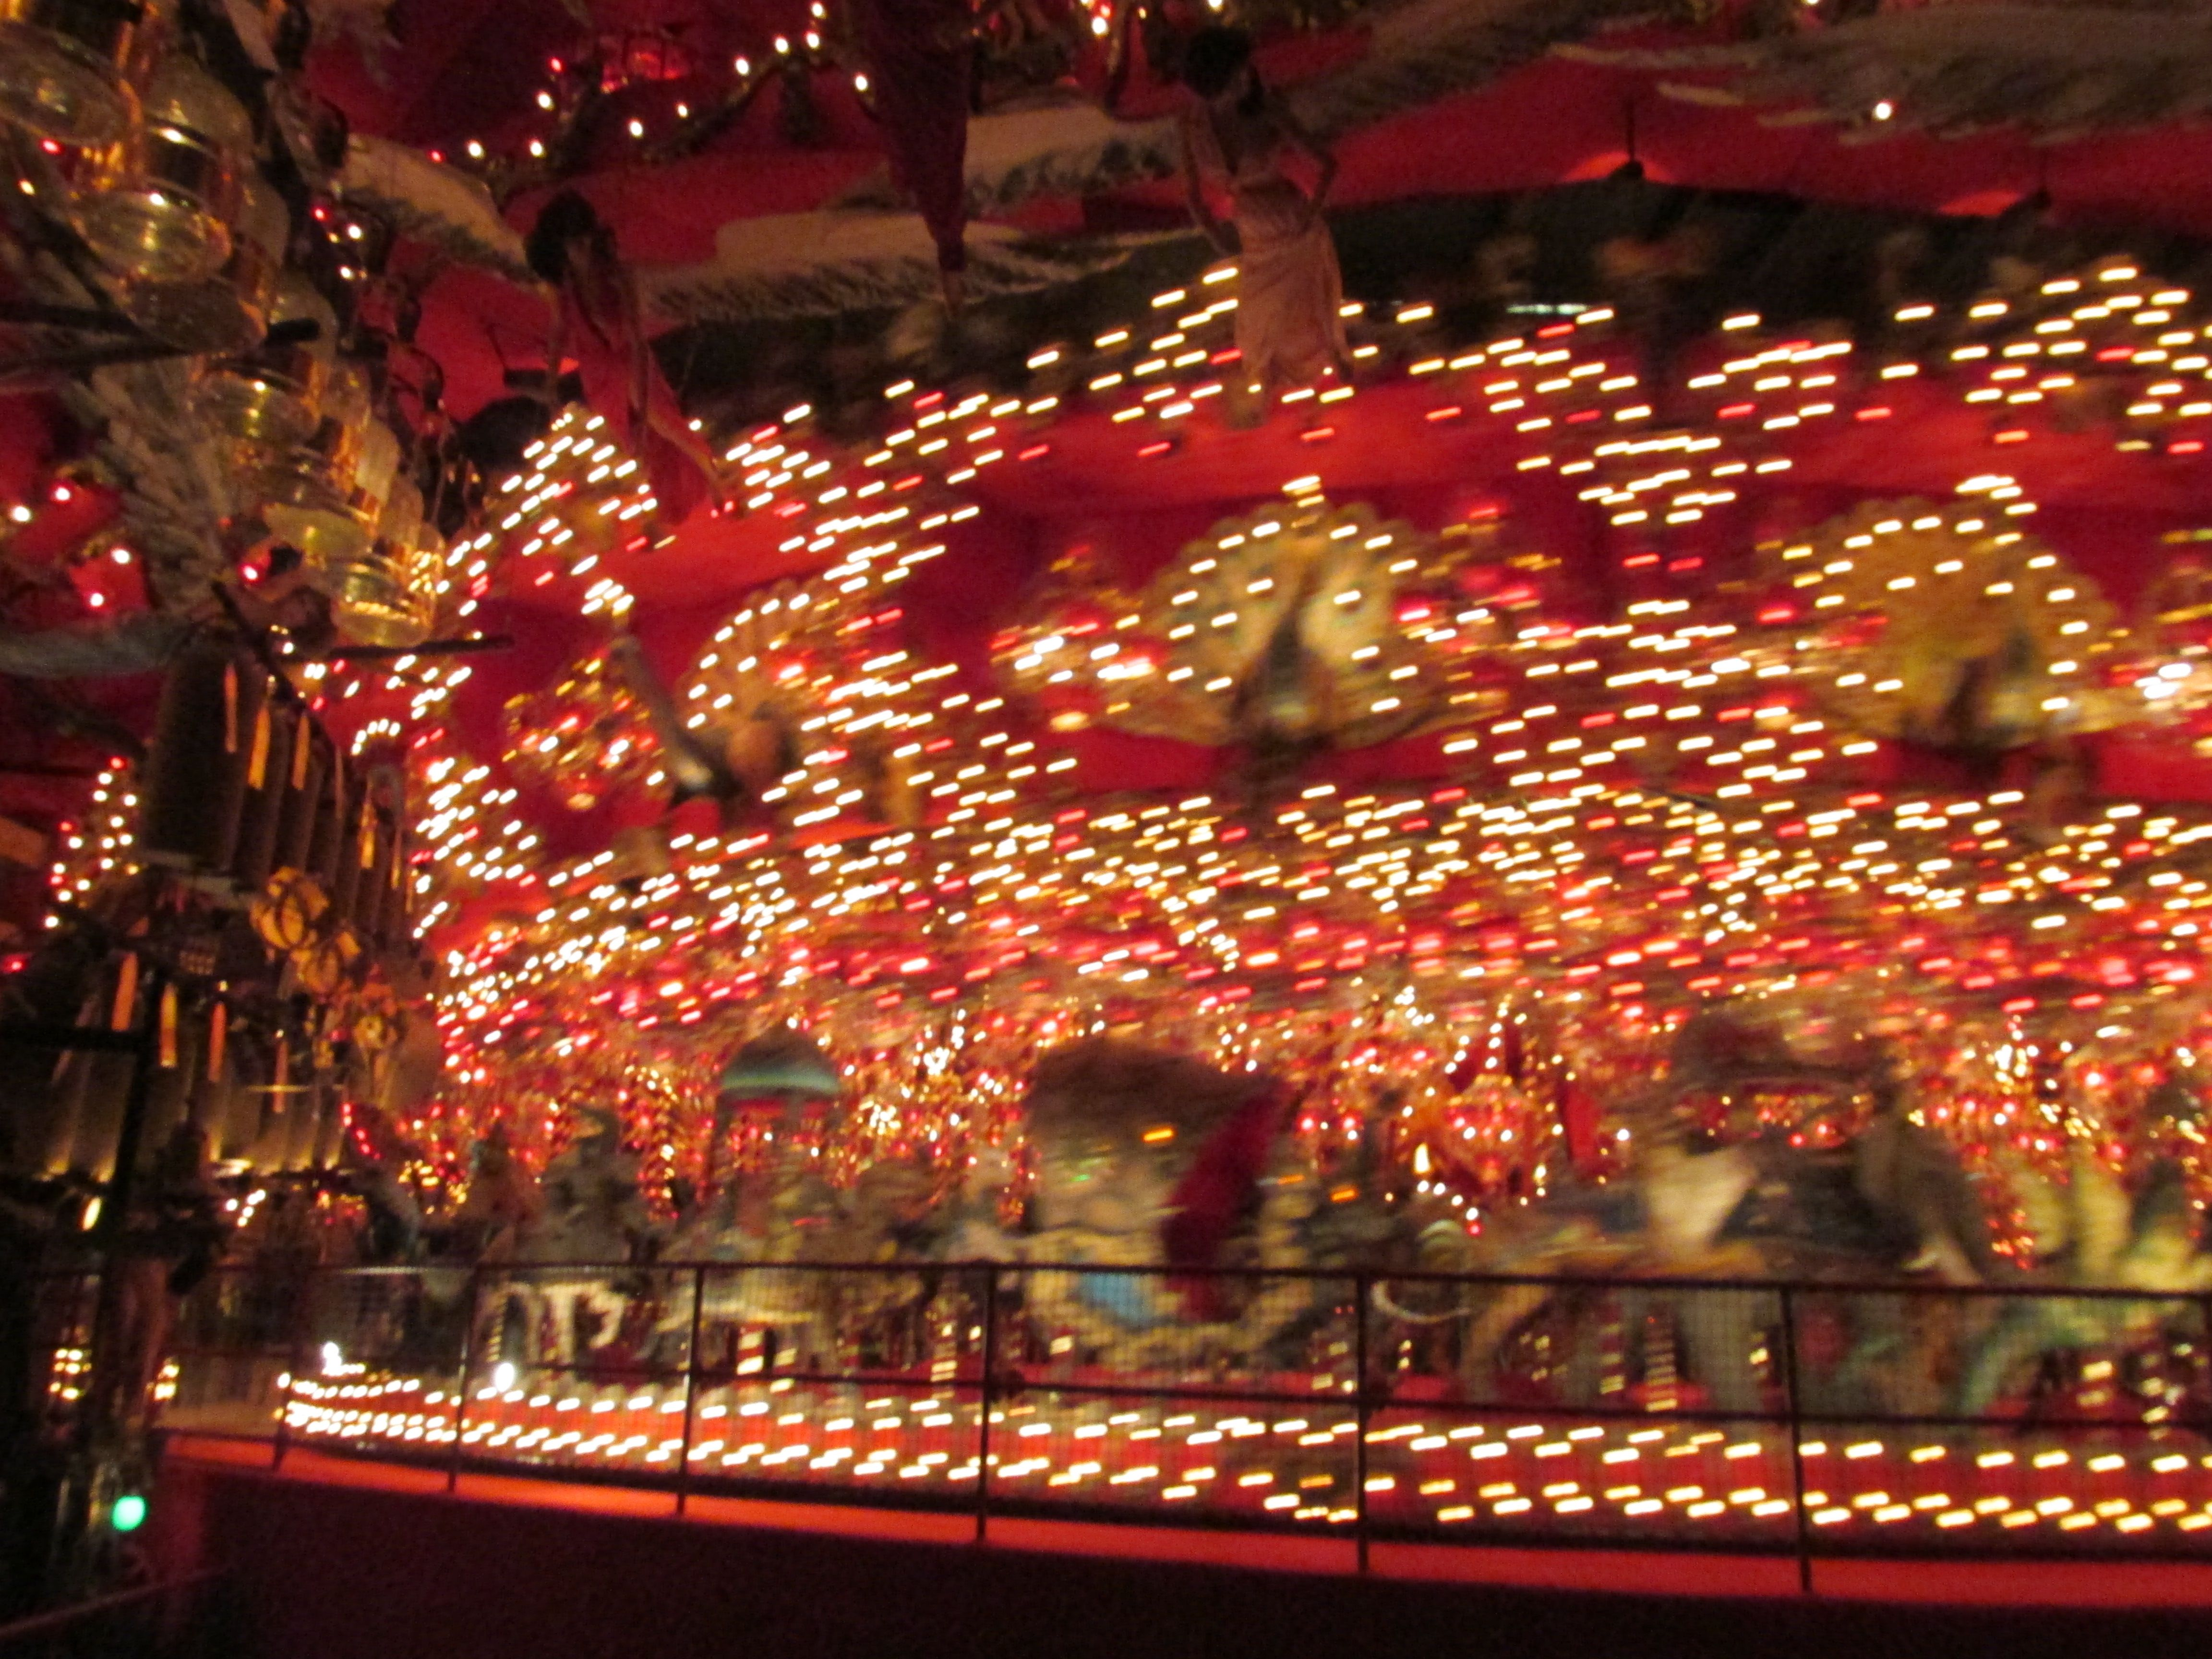 The world's largest carrousel